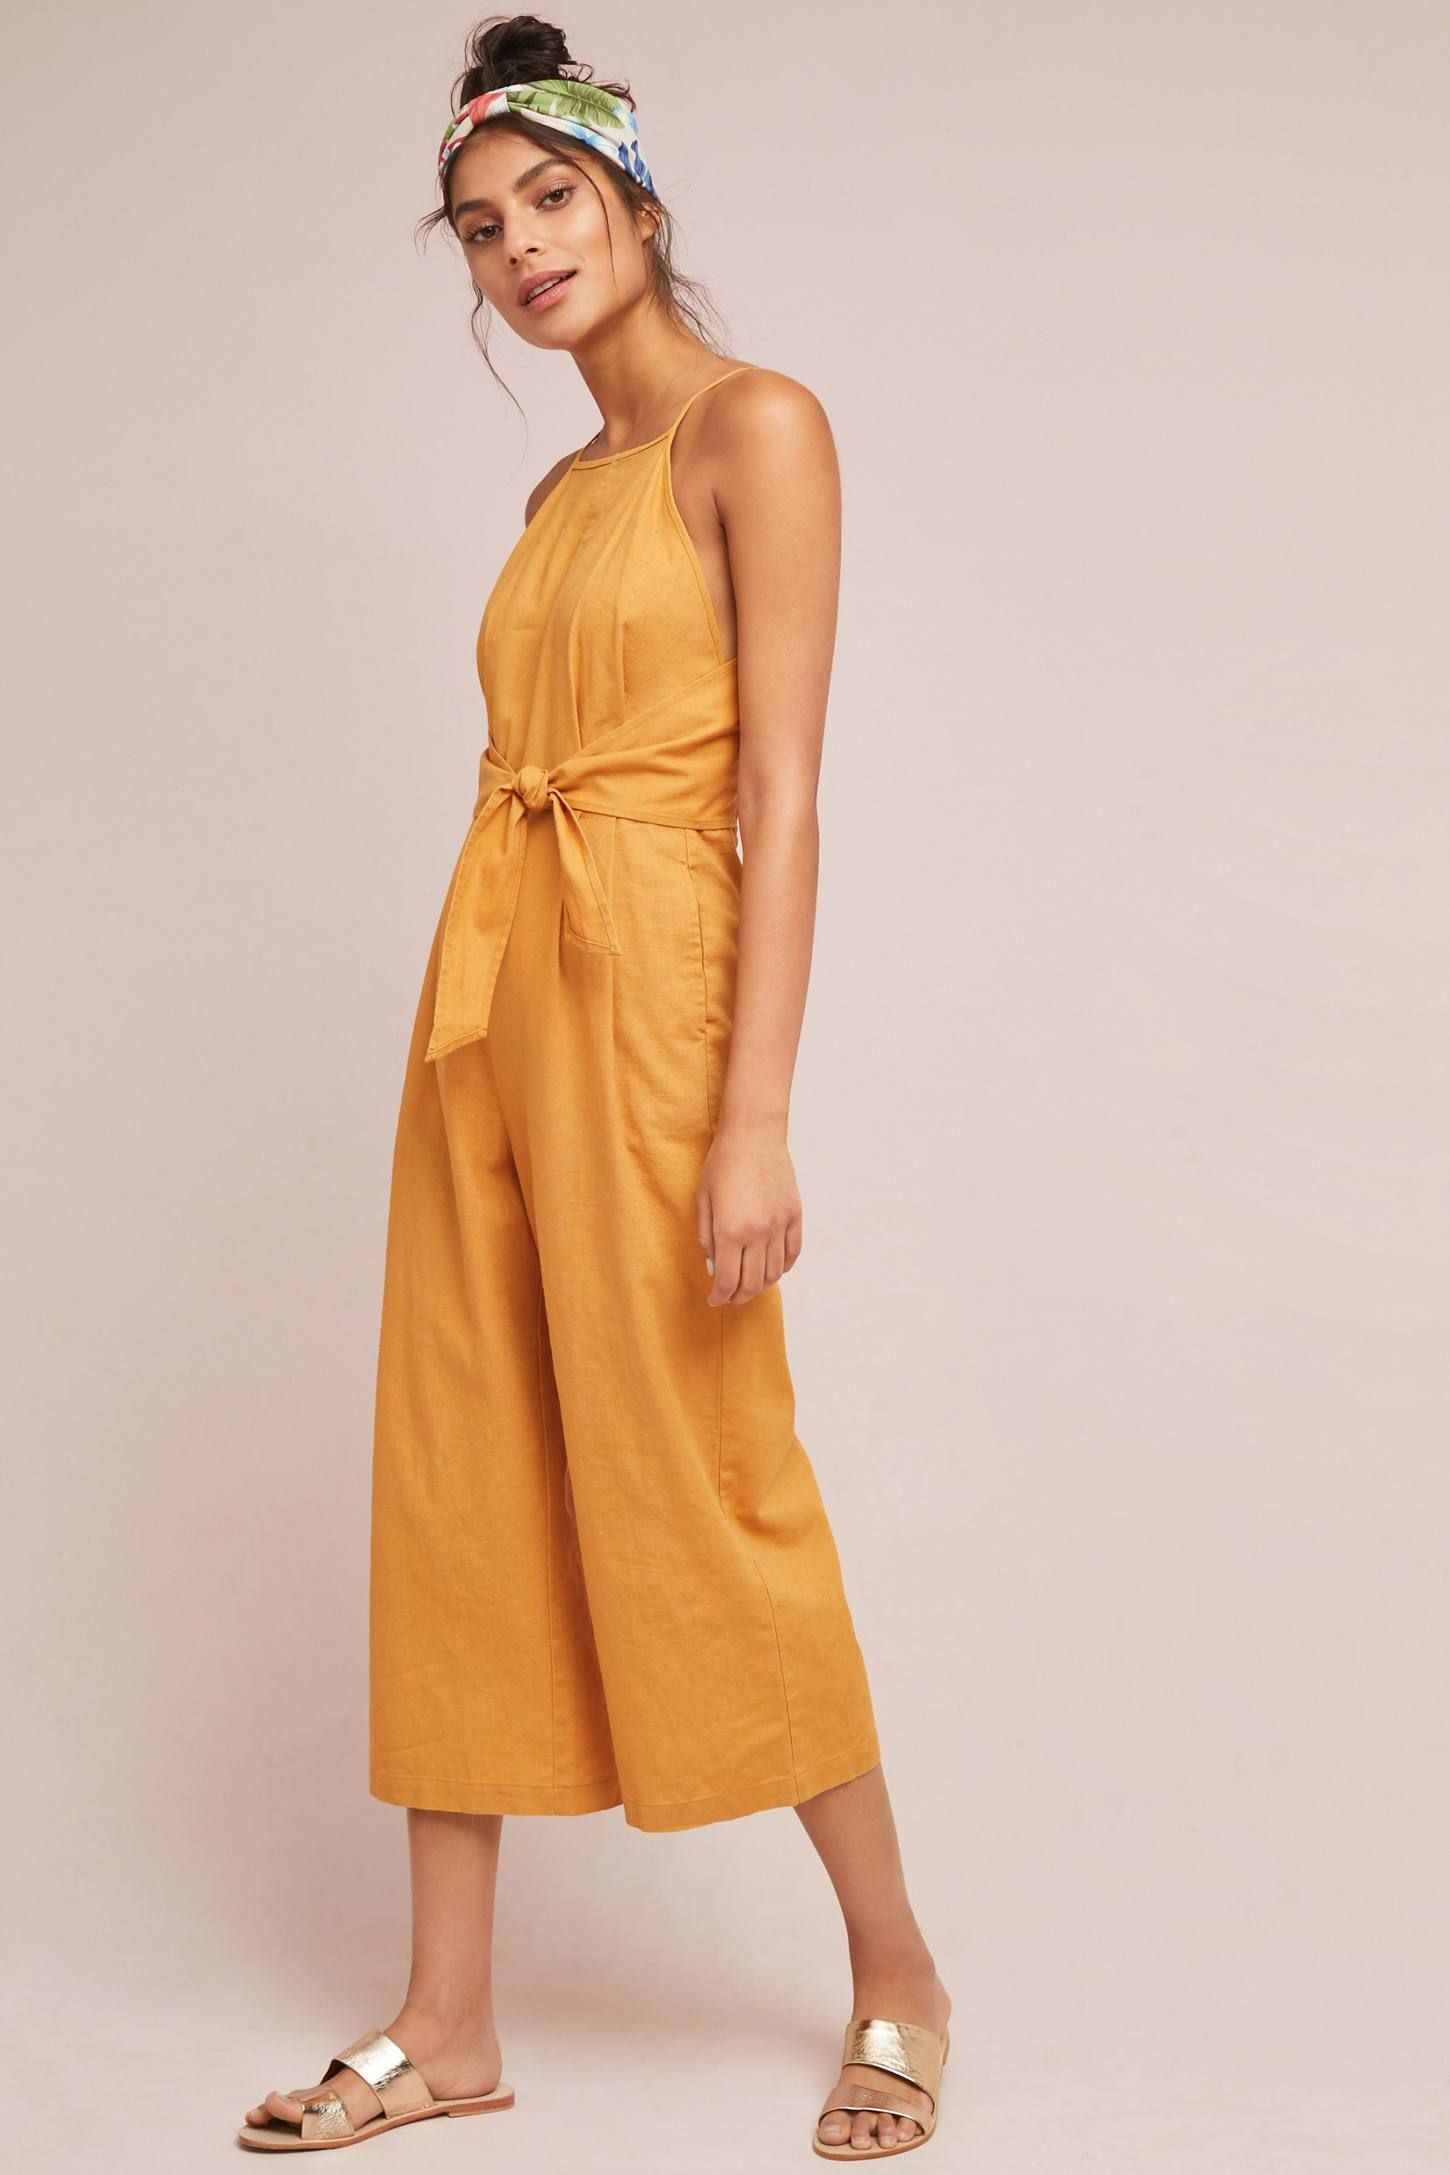 e93ea63bd68 Shop the Tied Linen Jumpsuit and more Anthropologie at Anthropologie today.  Read customer reviews